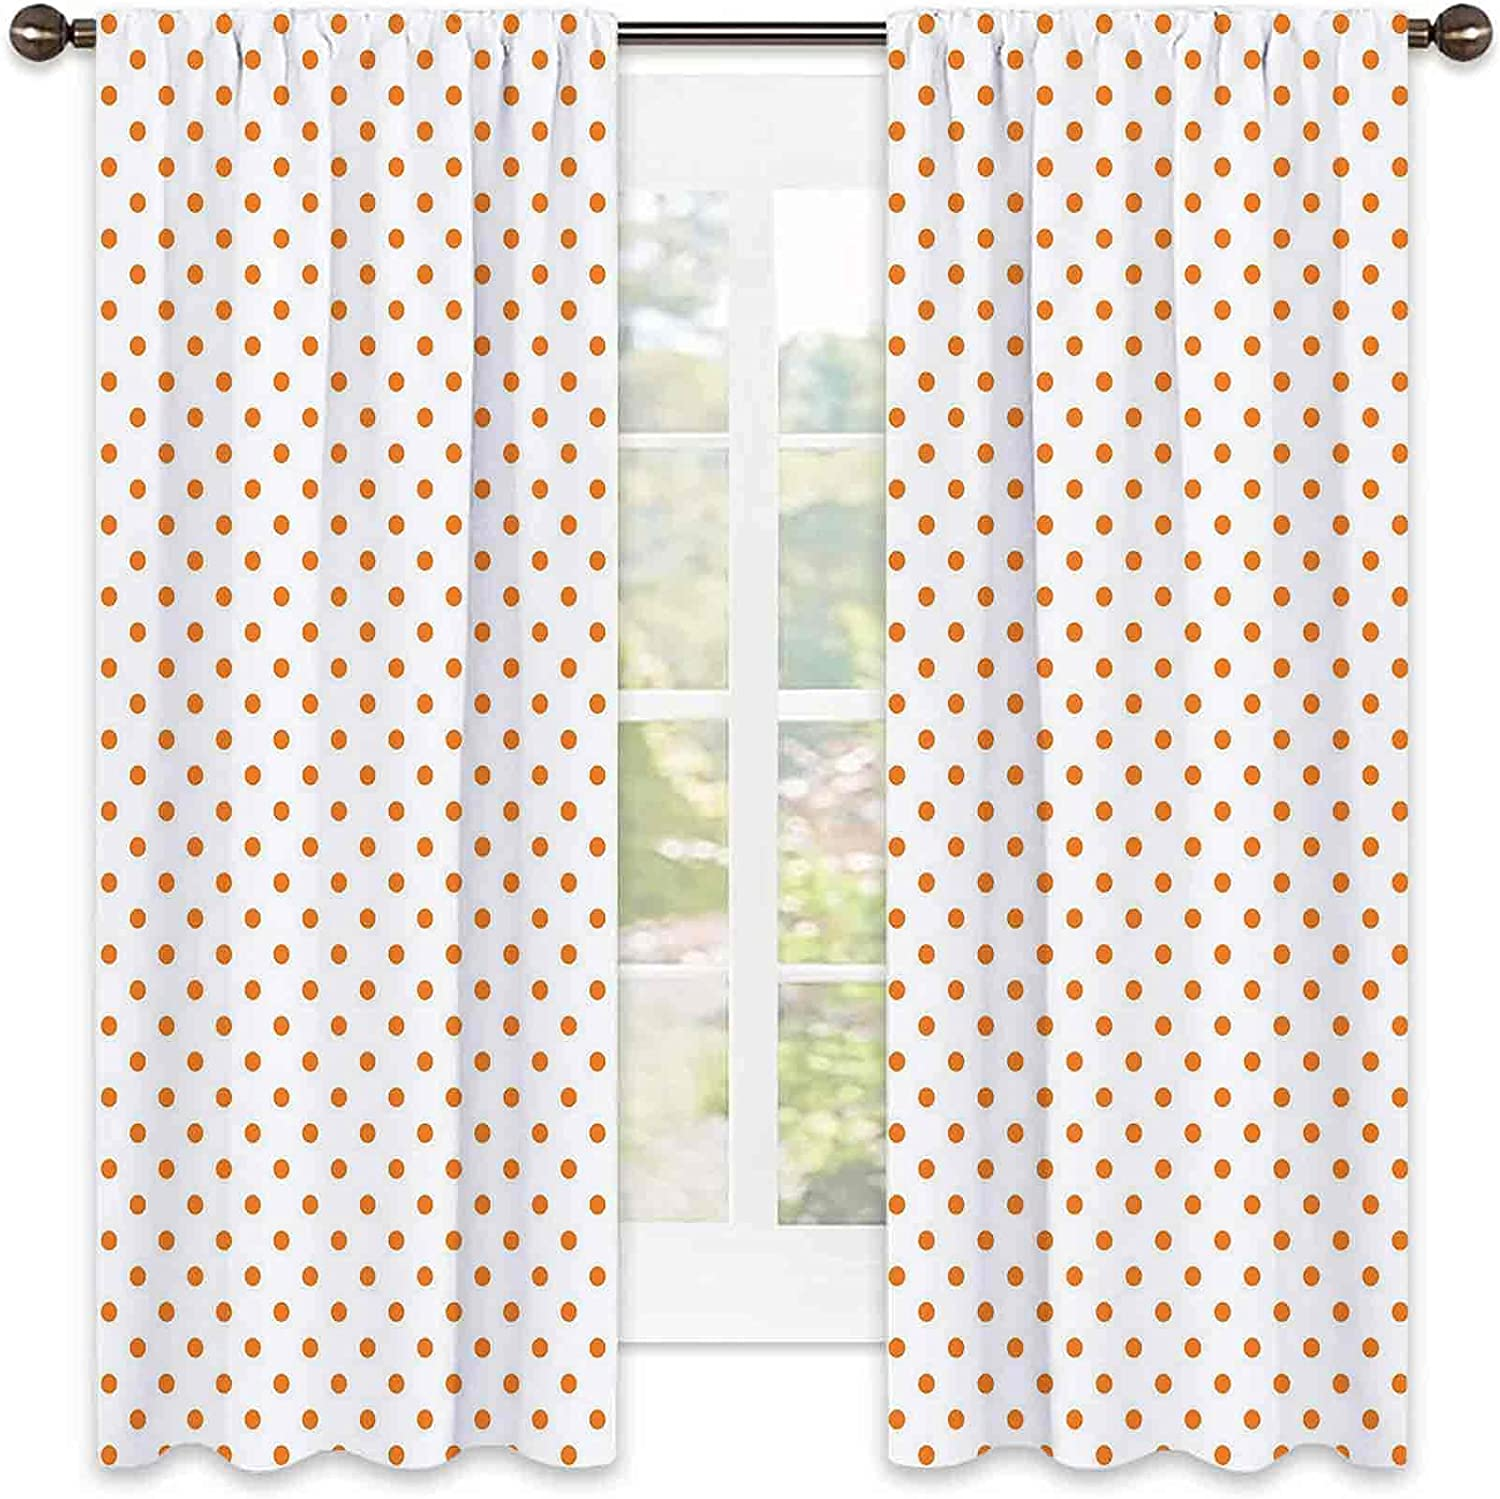 Orange Factory outlet Shading Insulated Curtain Little Sales for sale Polka Bl on Dots